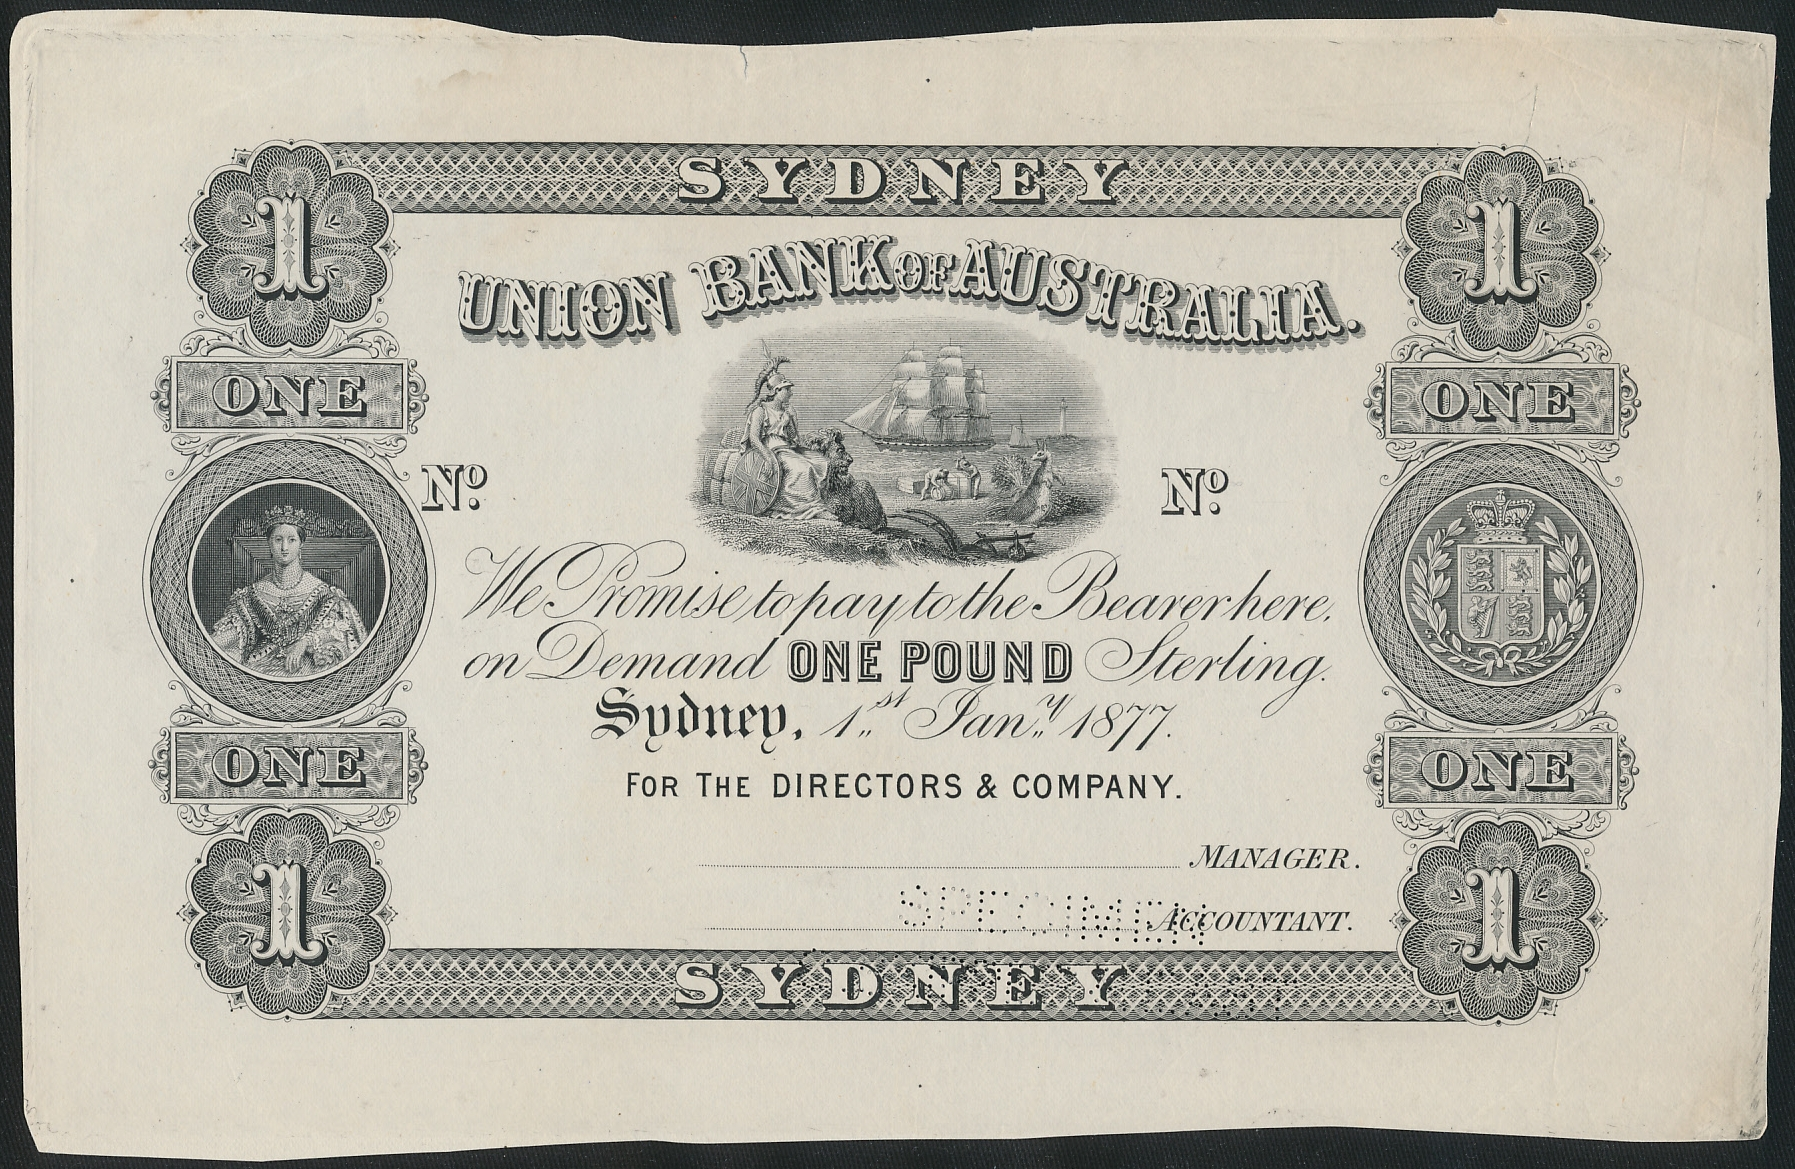 Australia-1877-Union-Bank-of-Australia-Syd-1-Cat-24-000-Uniface-Printer-Proof